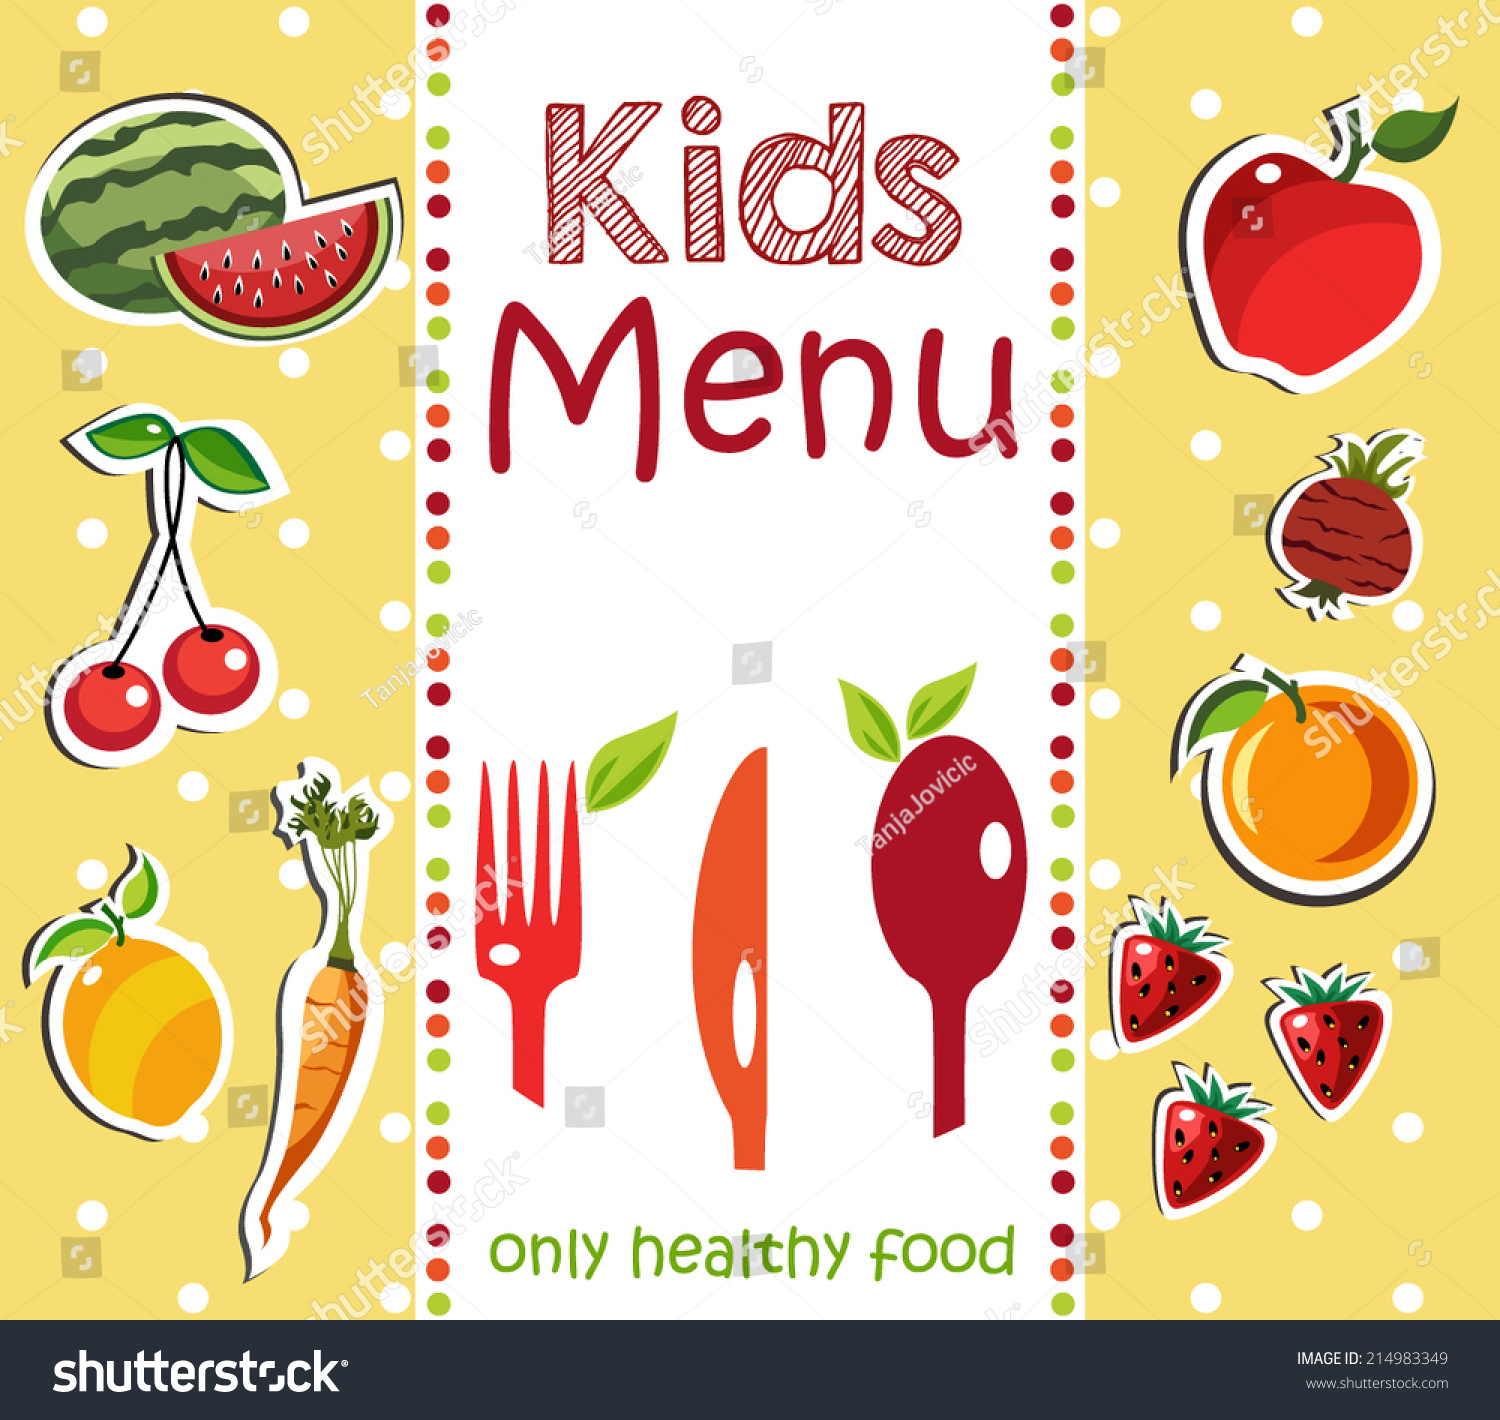 What to cook for children - healthy foods and menus